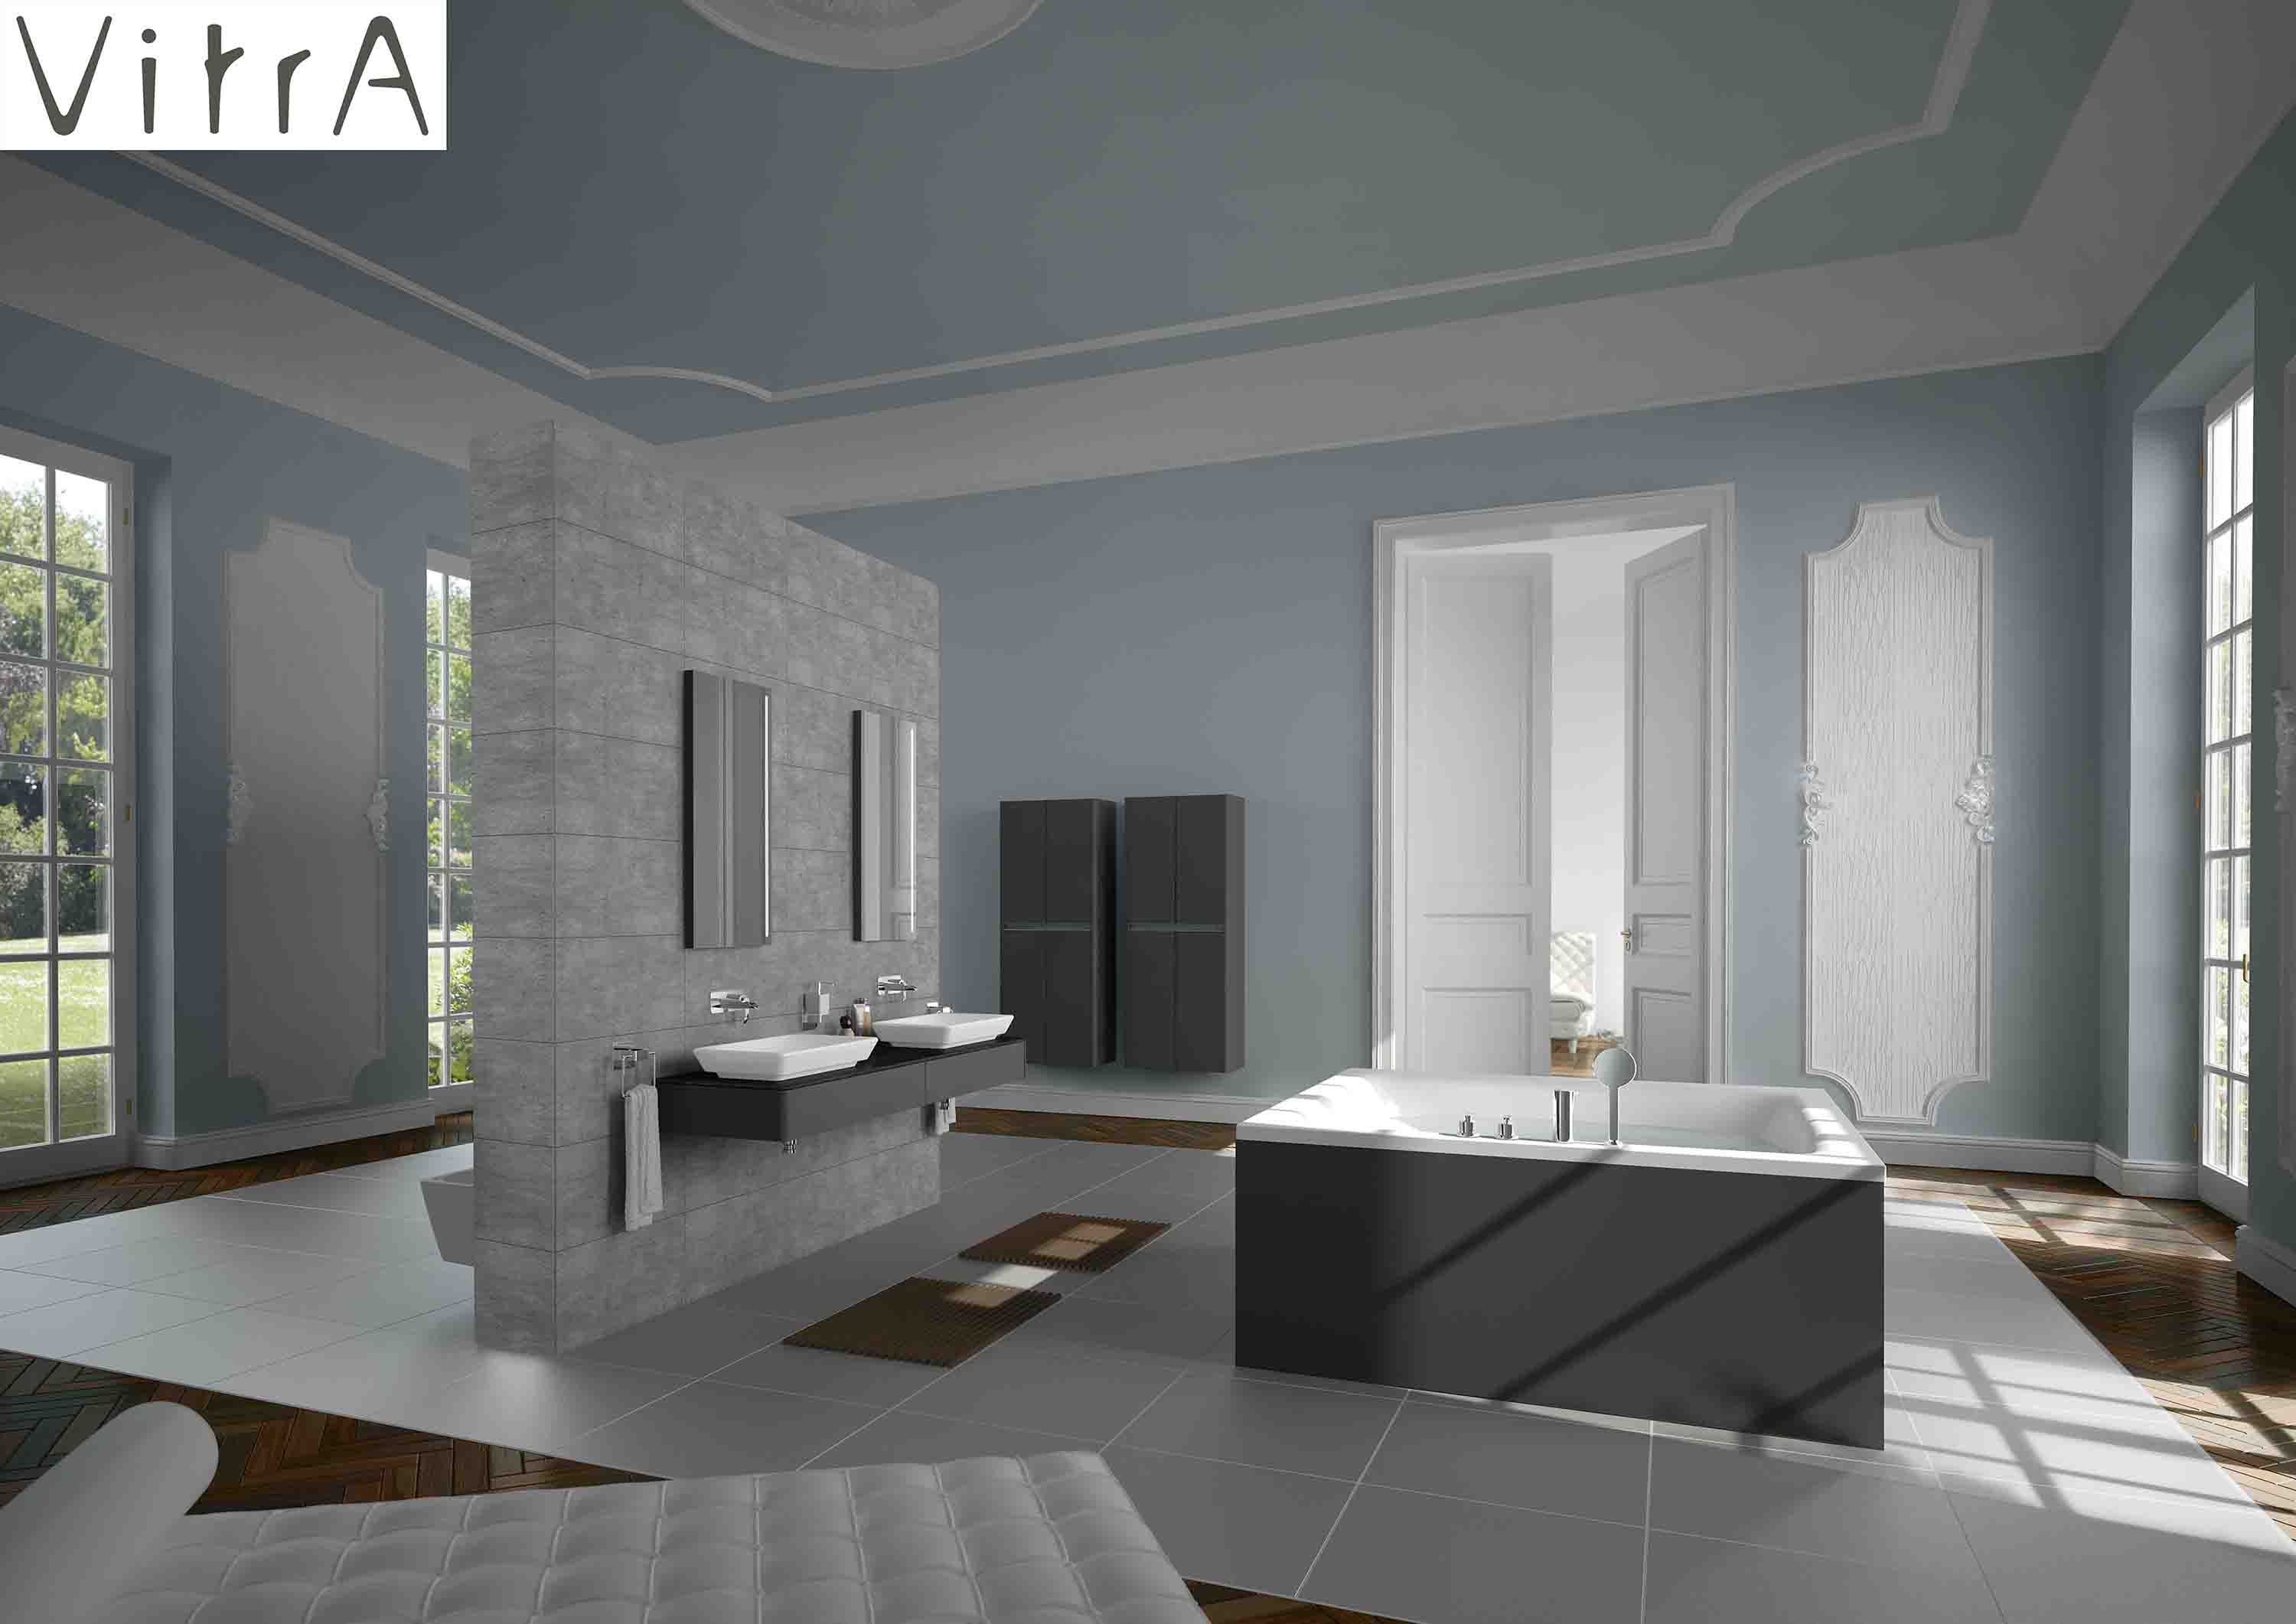 vitra introduces world class bathroom solutions to india general